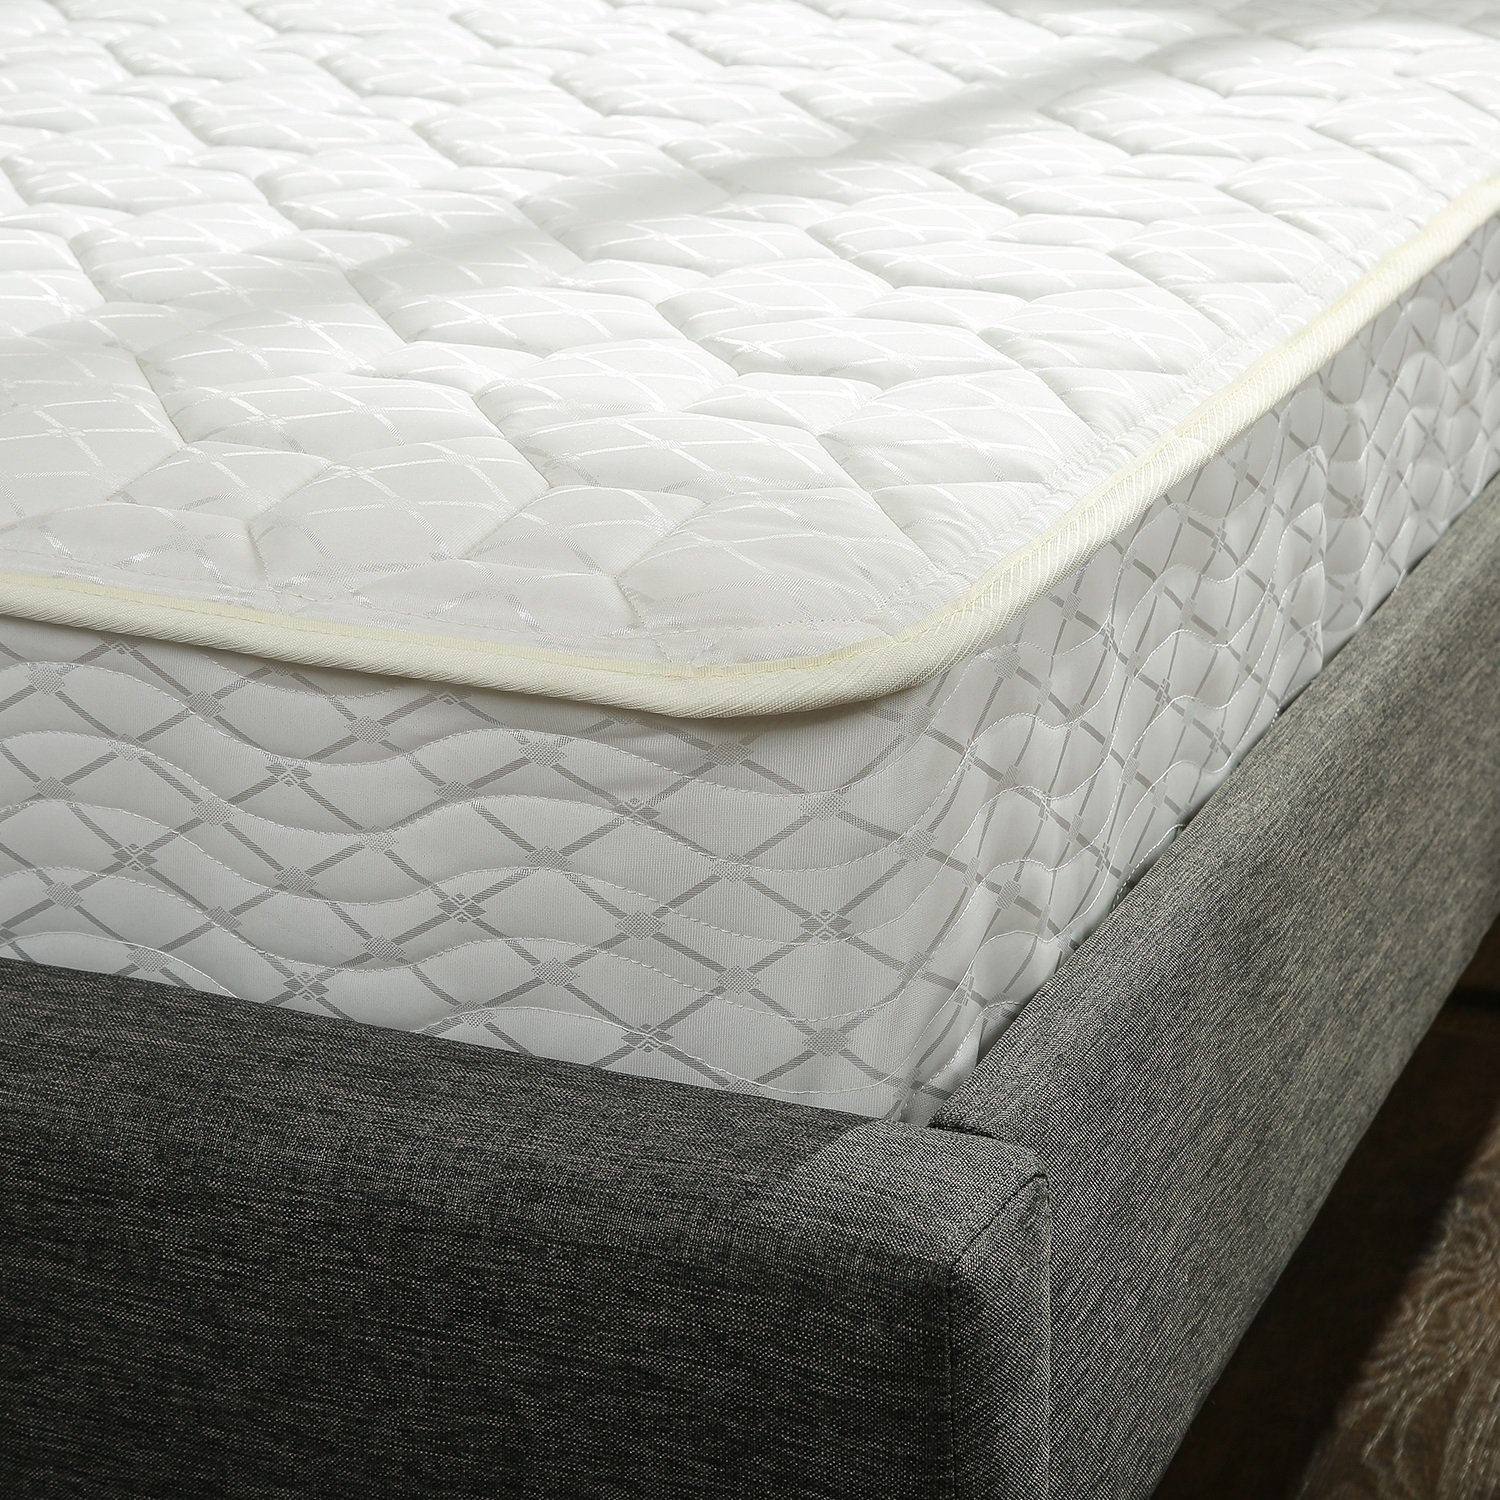 Zinus 8 Inch Hybrid Green Tea Foam and Spring Mattress Review